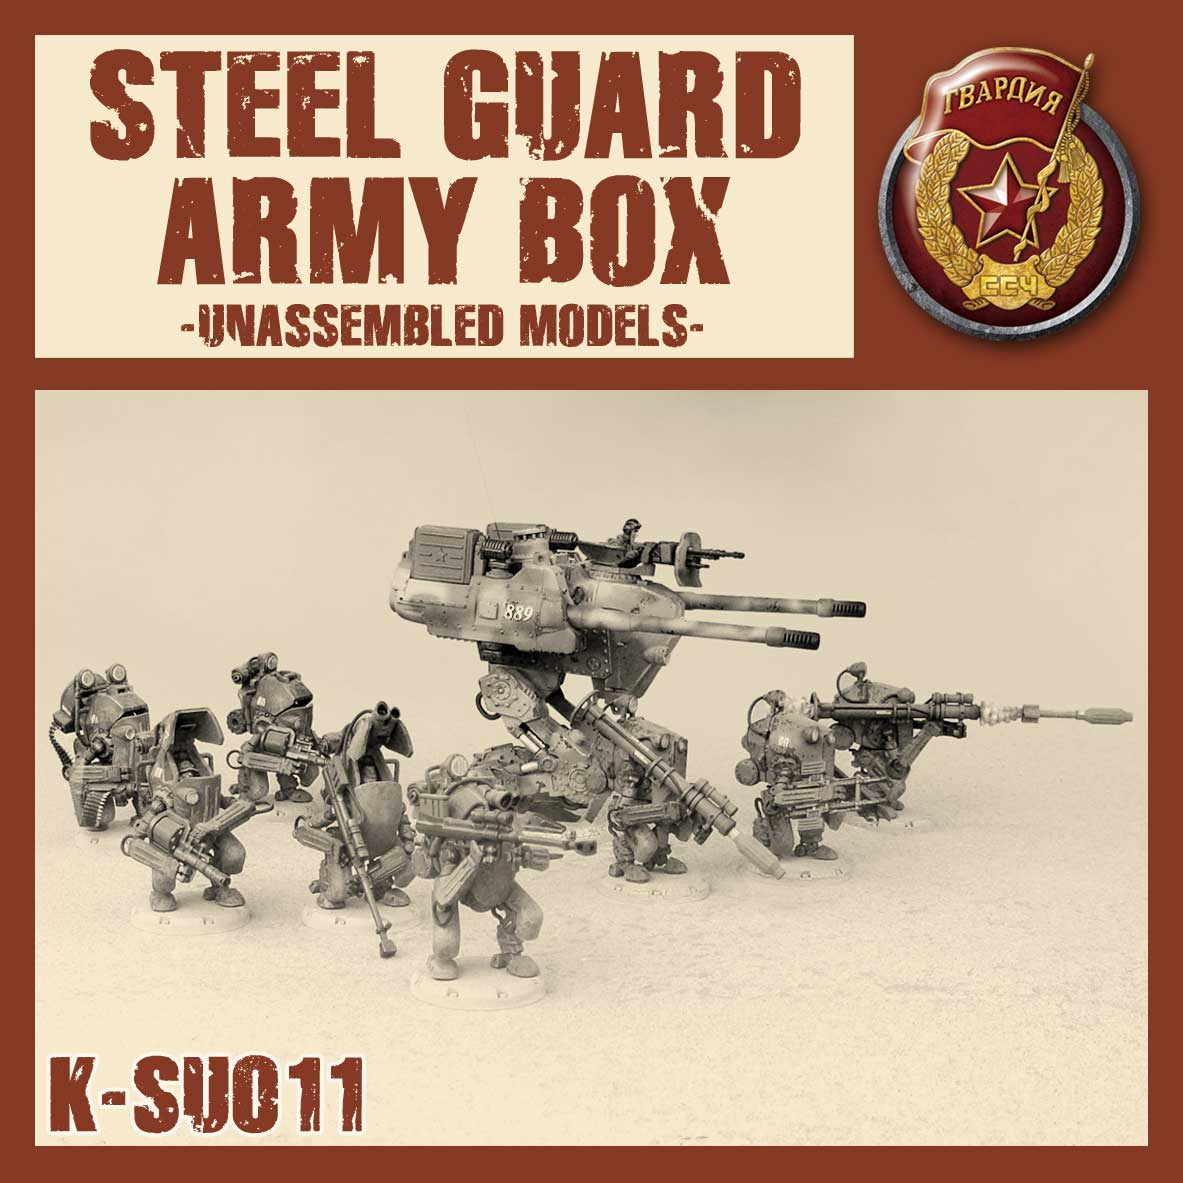 Steel Guard Army Box Kit